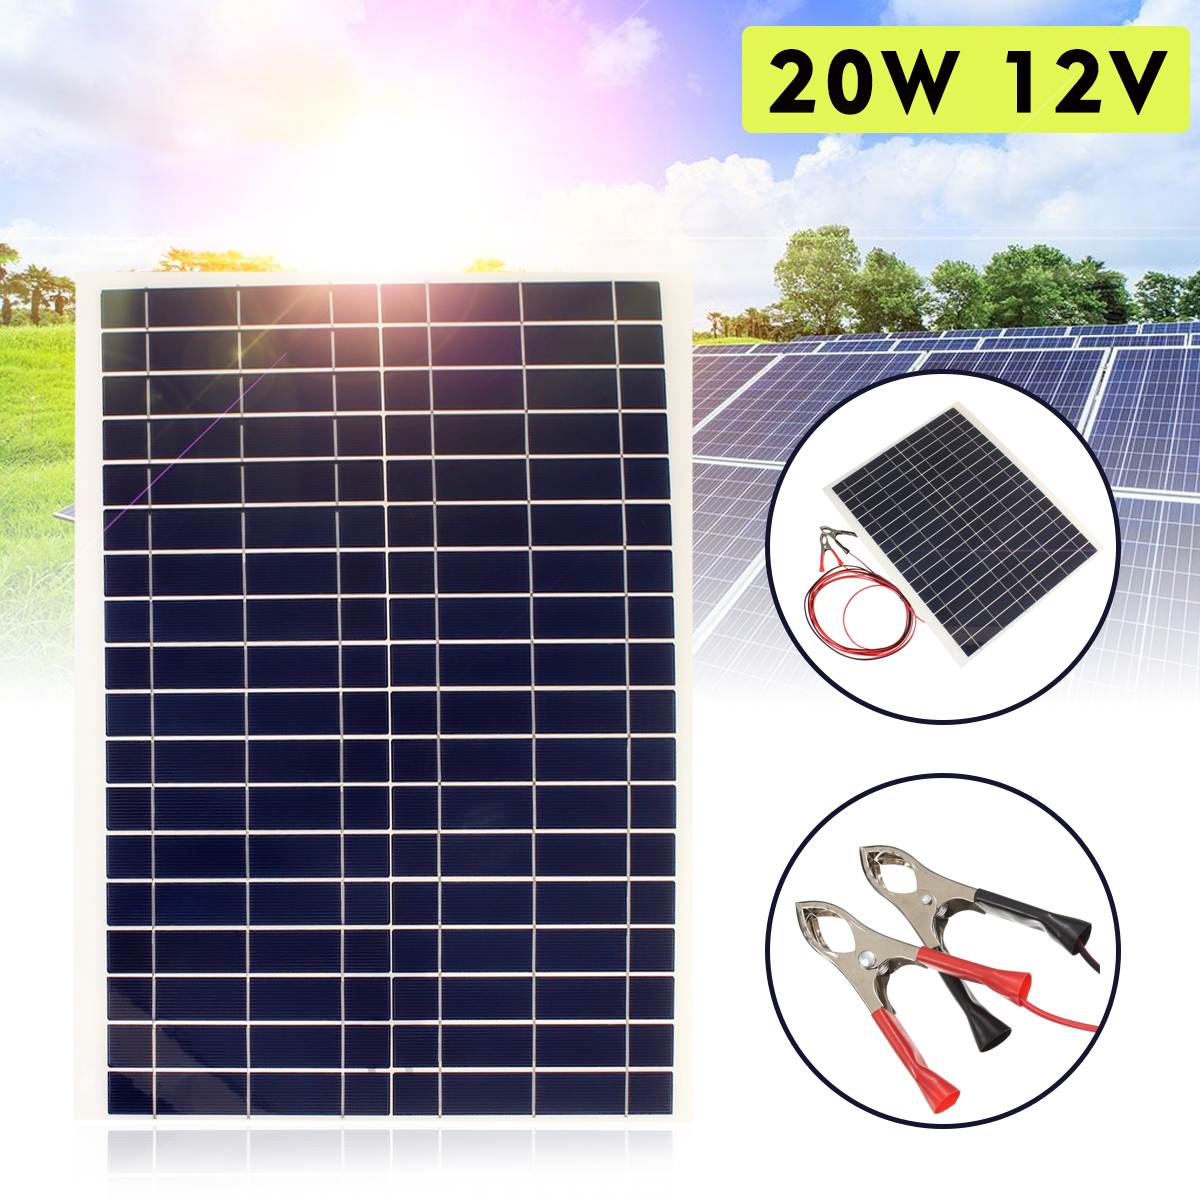 leory 110w 12v flexible solar panel diy battery system sunpower solar cells charger for rv boat car with 1 5m cable 1180mmx540mm LEORY Flexible Solar Panel Plate 20W 18V Solar Charger For Car Battery 12V Sunpower Polysilicon Silicon Cells Module Kit